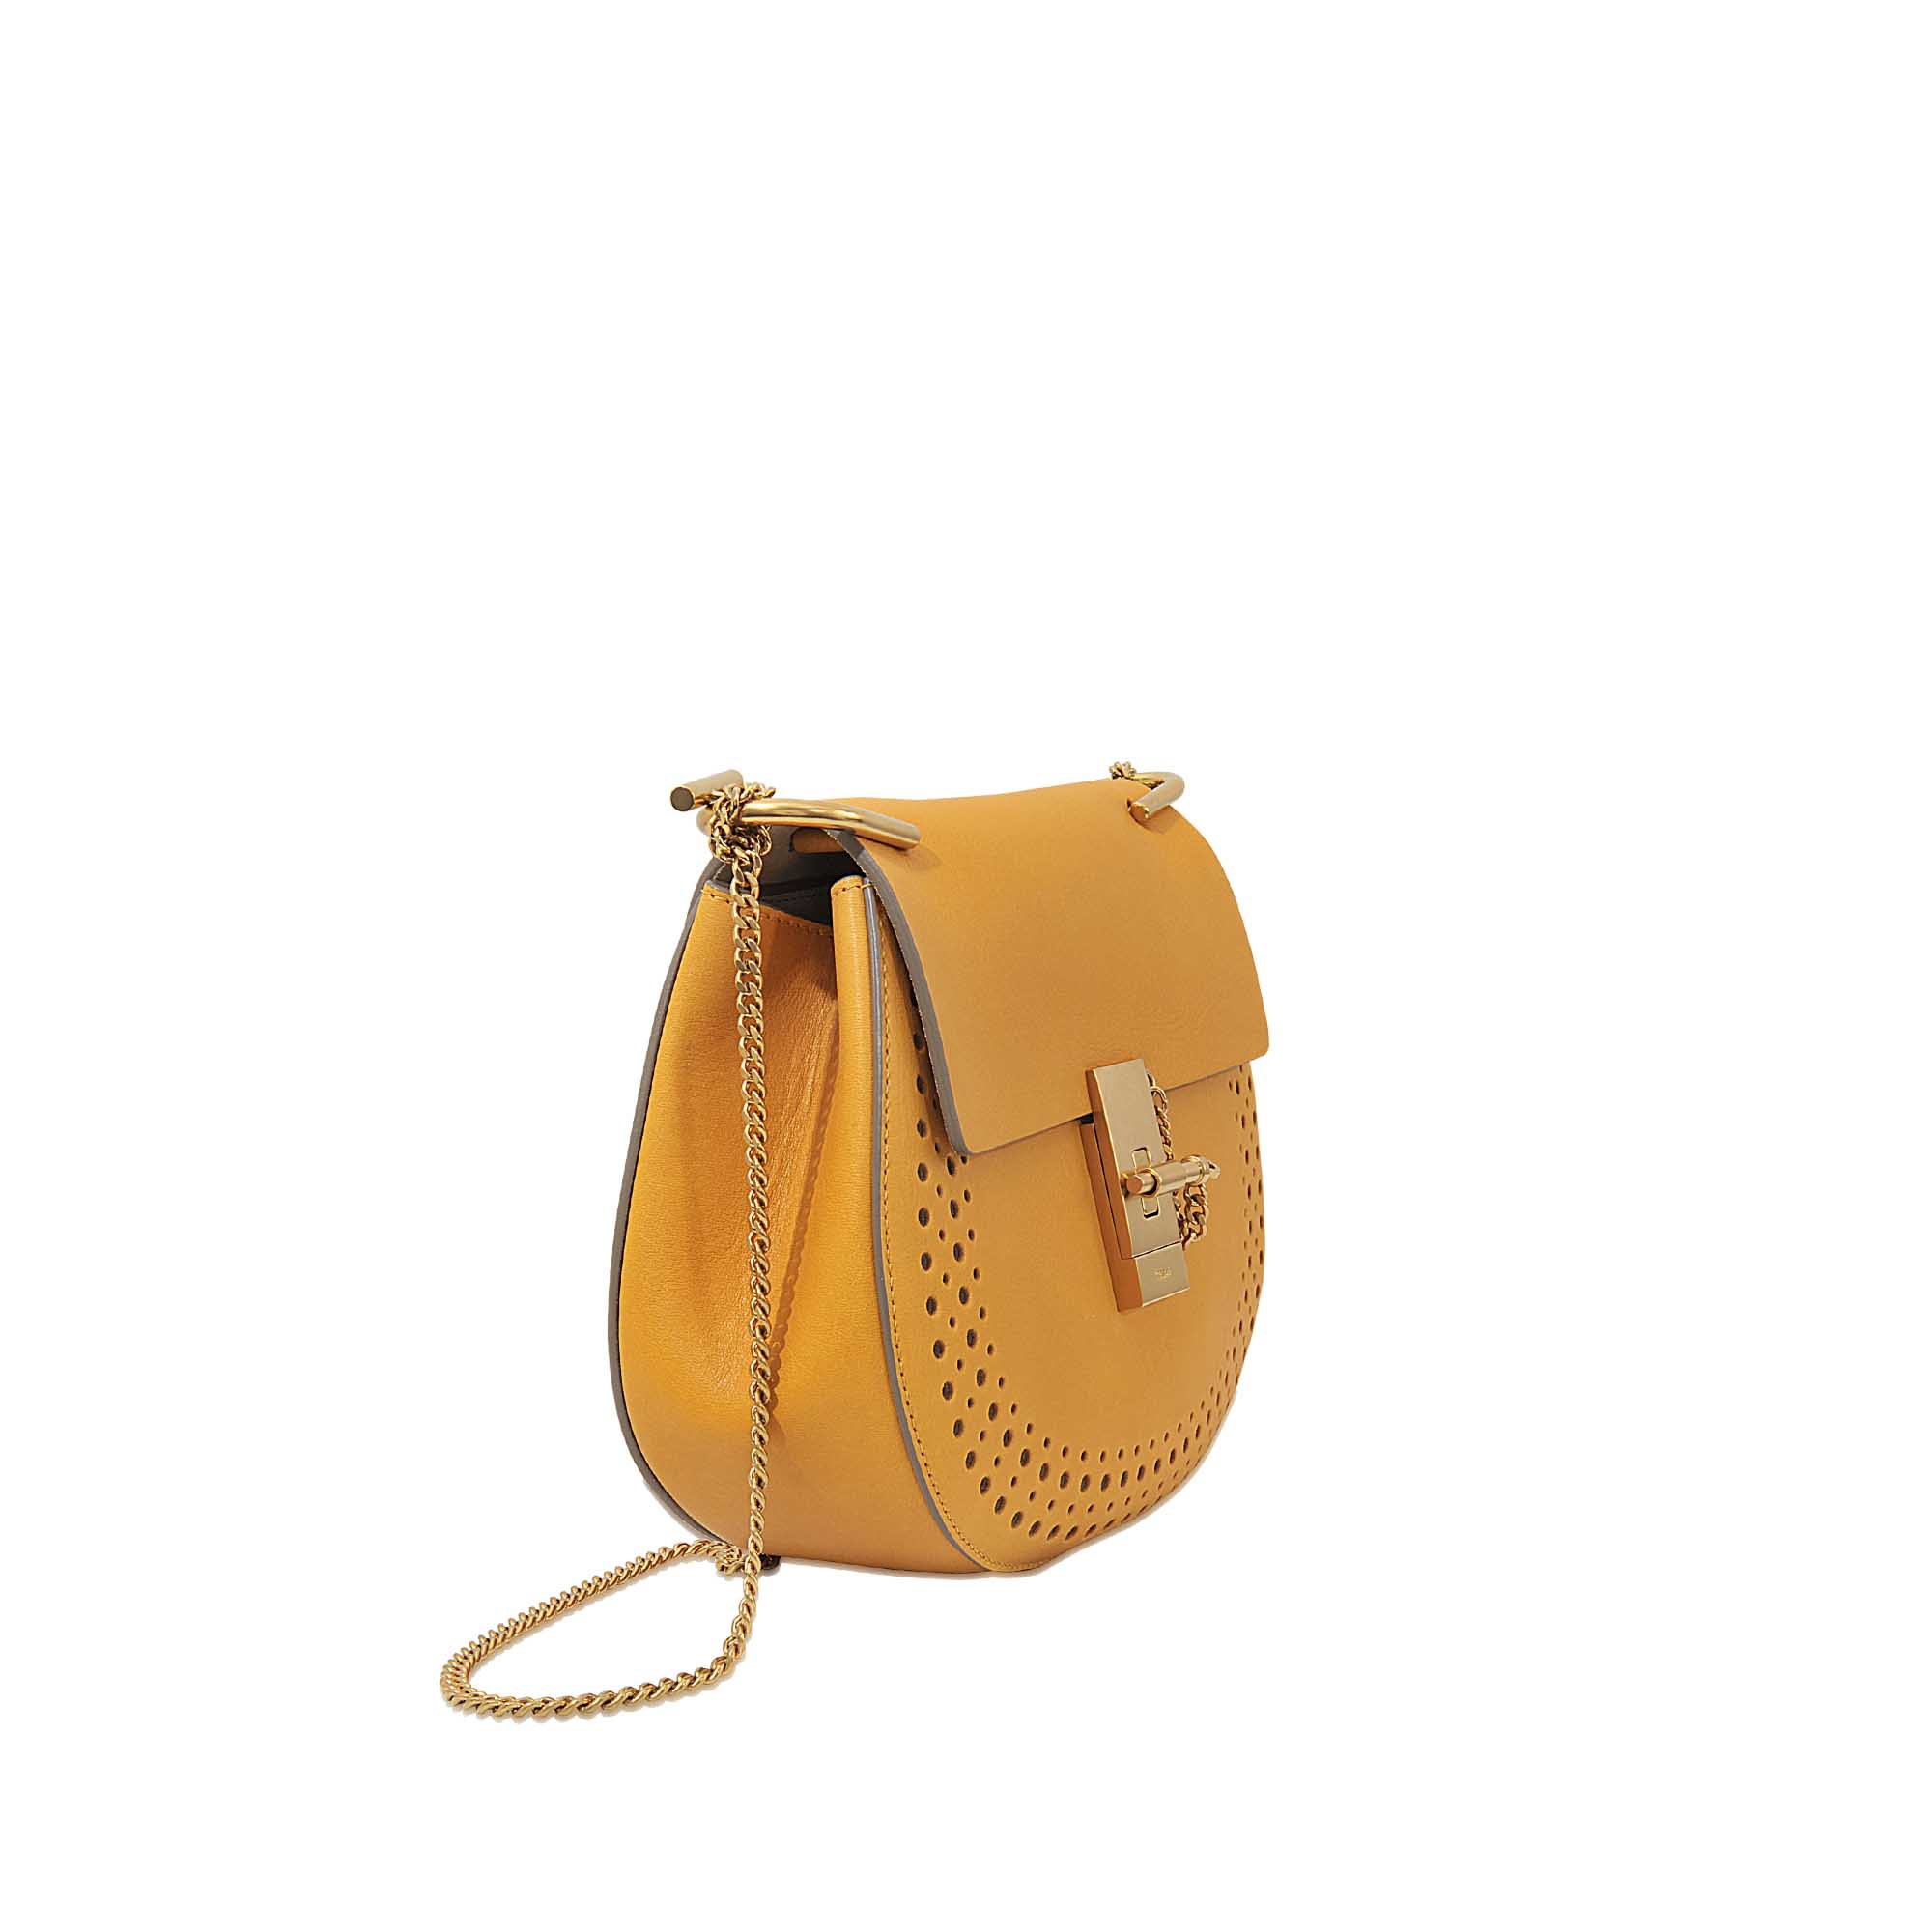 chloe handbags shop online - Chlo�� Drew Perforated Small Saddle Bag in Yellow | Lyst